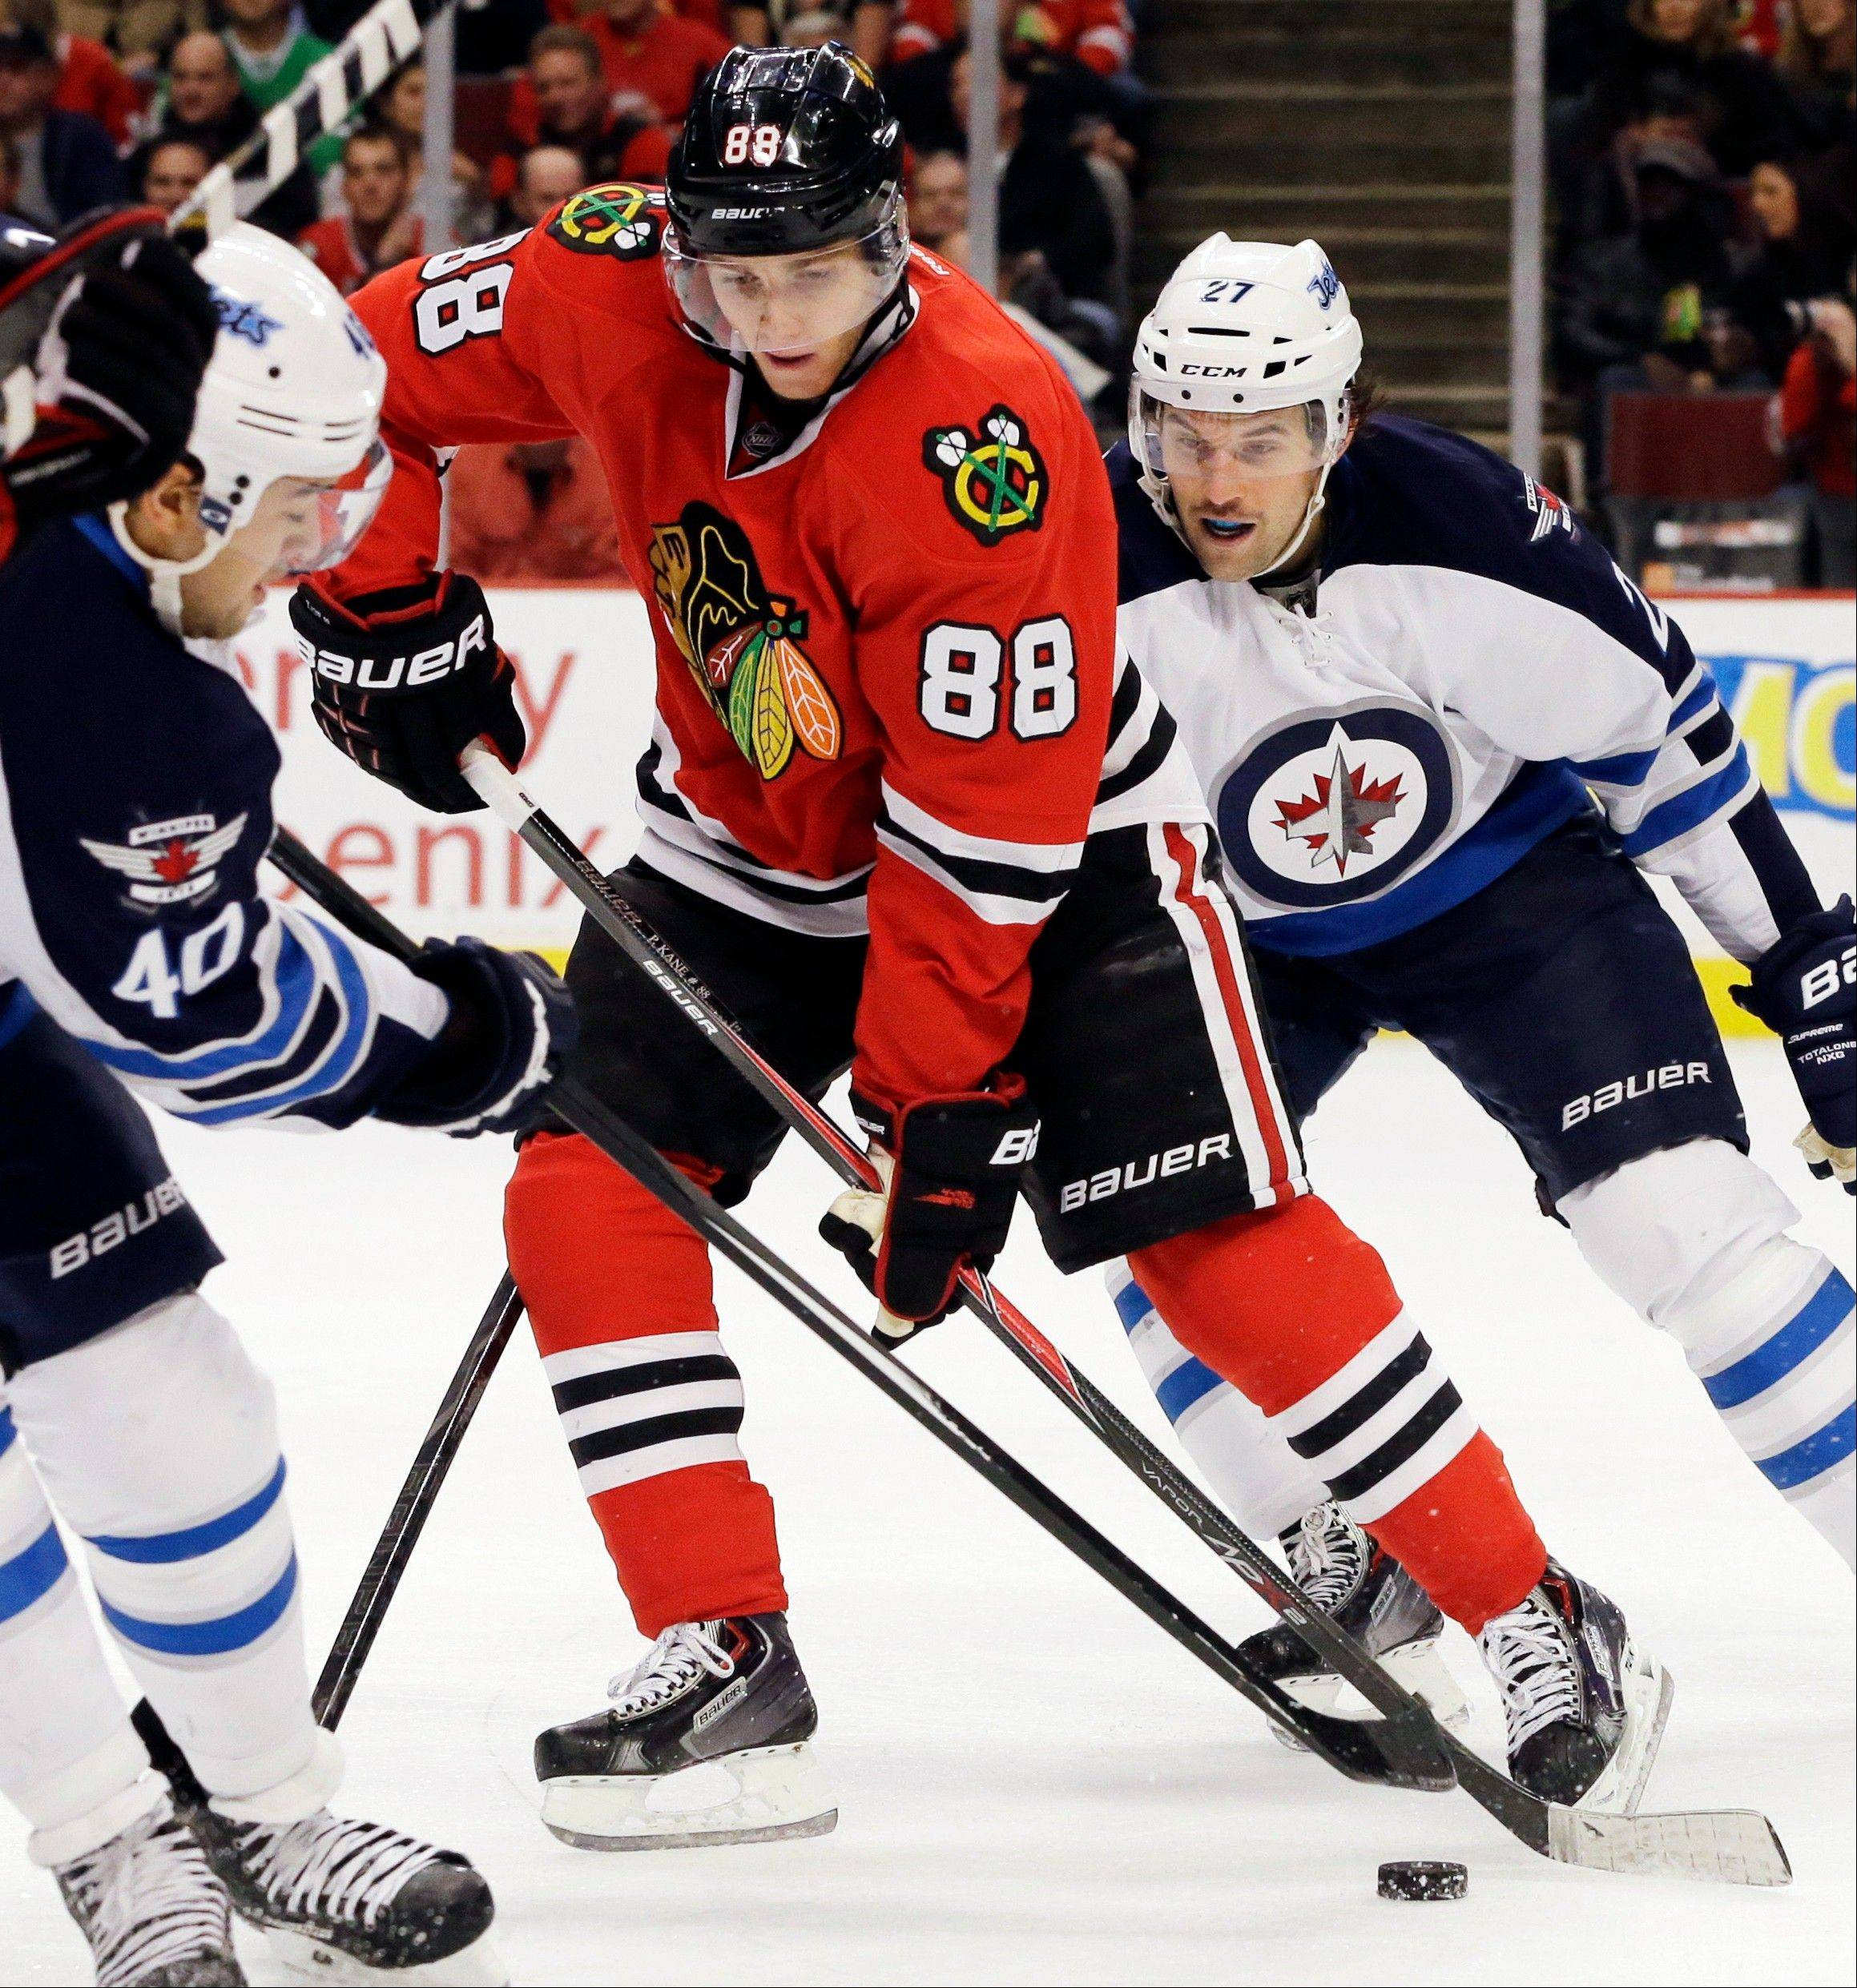 Chicago Blackhawks' Patrick Kane (88) controls the puck against Winnipeg Jets' Devin Setoguchi, left, and Eric Tangradi during the second period of an NHL hockey game in Chicago, Wednesday, Nov. 6, 2013. (AP Photo/Nam Y. Huh)